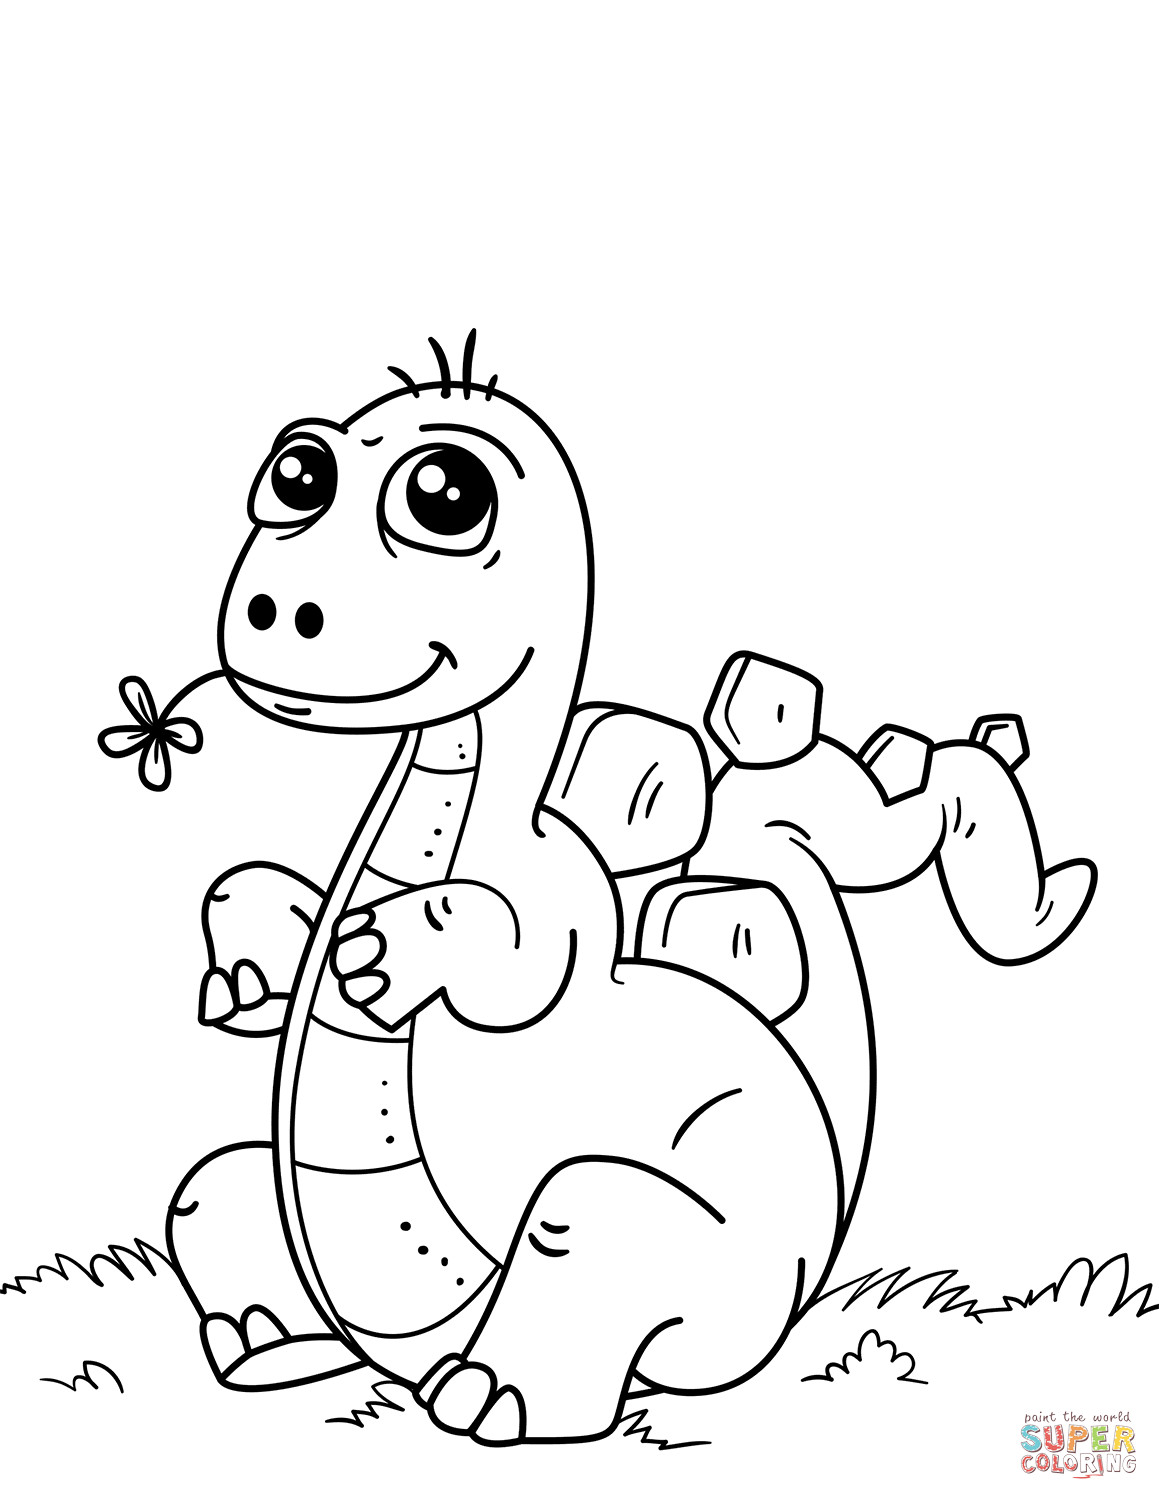 Kids Coloring Pages Dinosaur  Cute Little Dinosaur coloring page